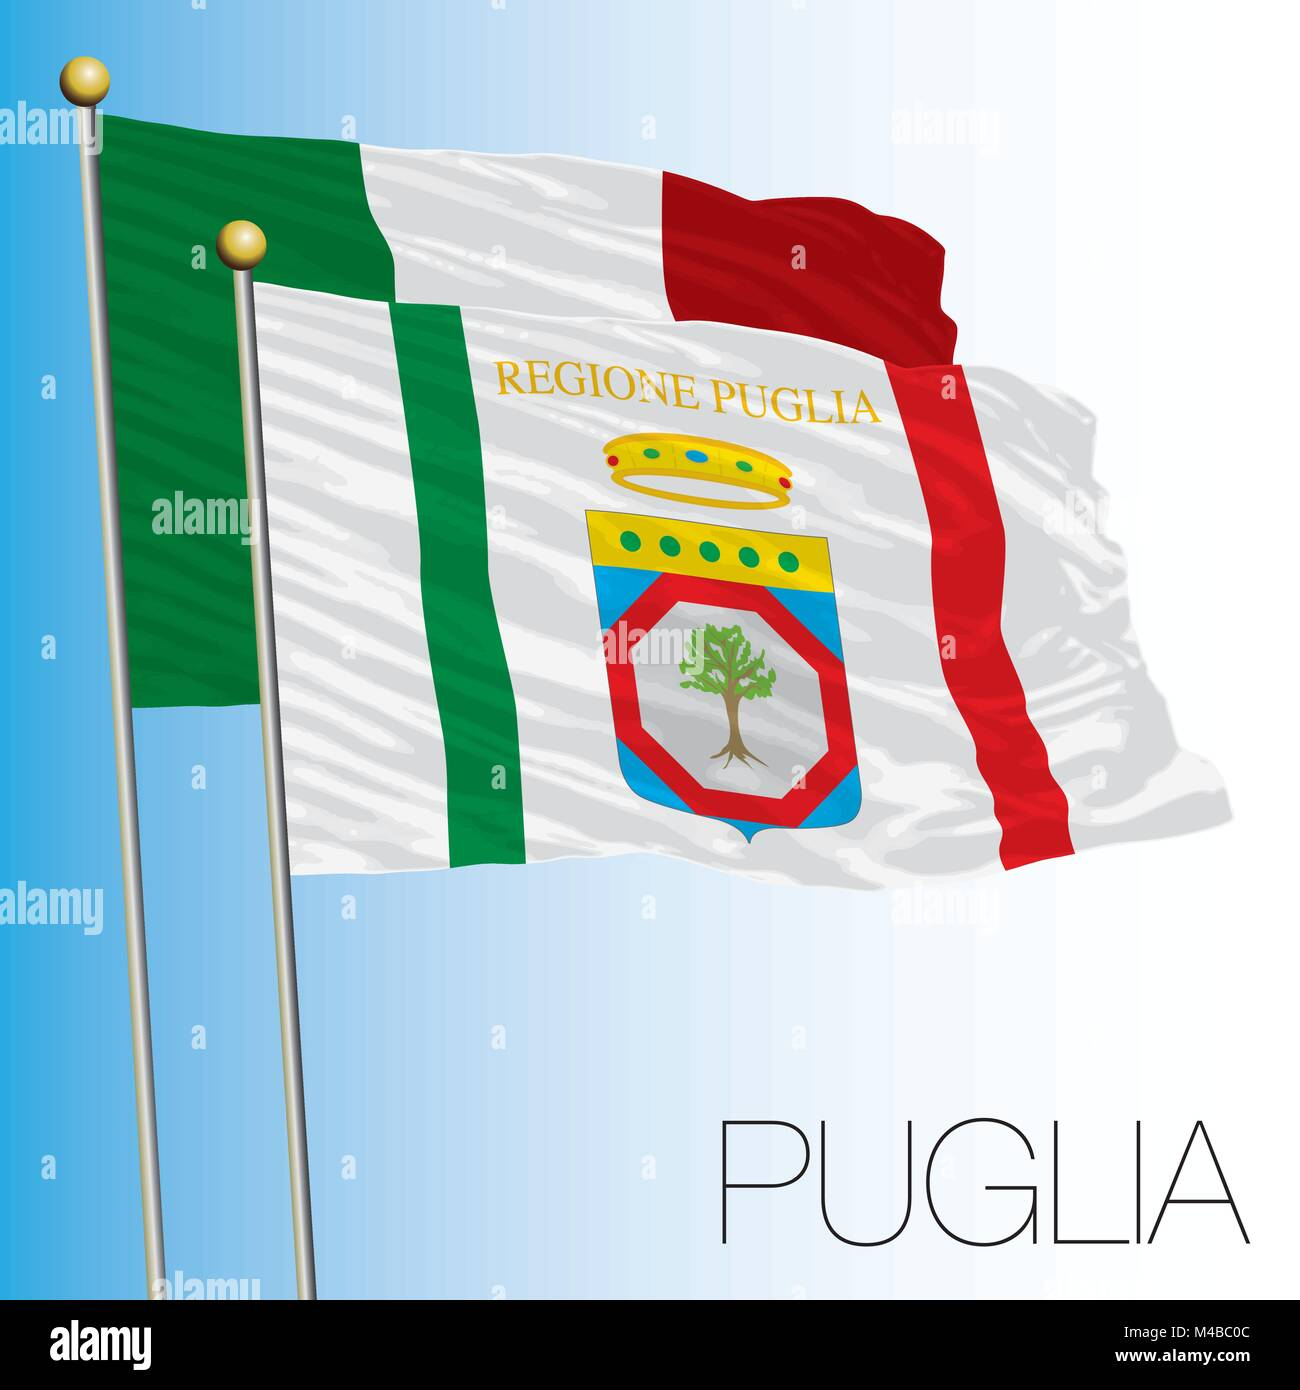 Puglia regional flag, Italian Republic, Italy, European Union - Stock Vector